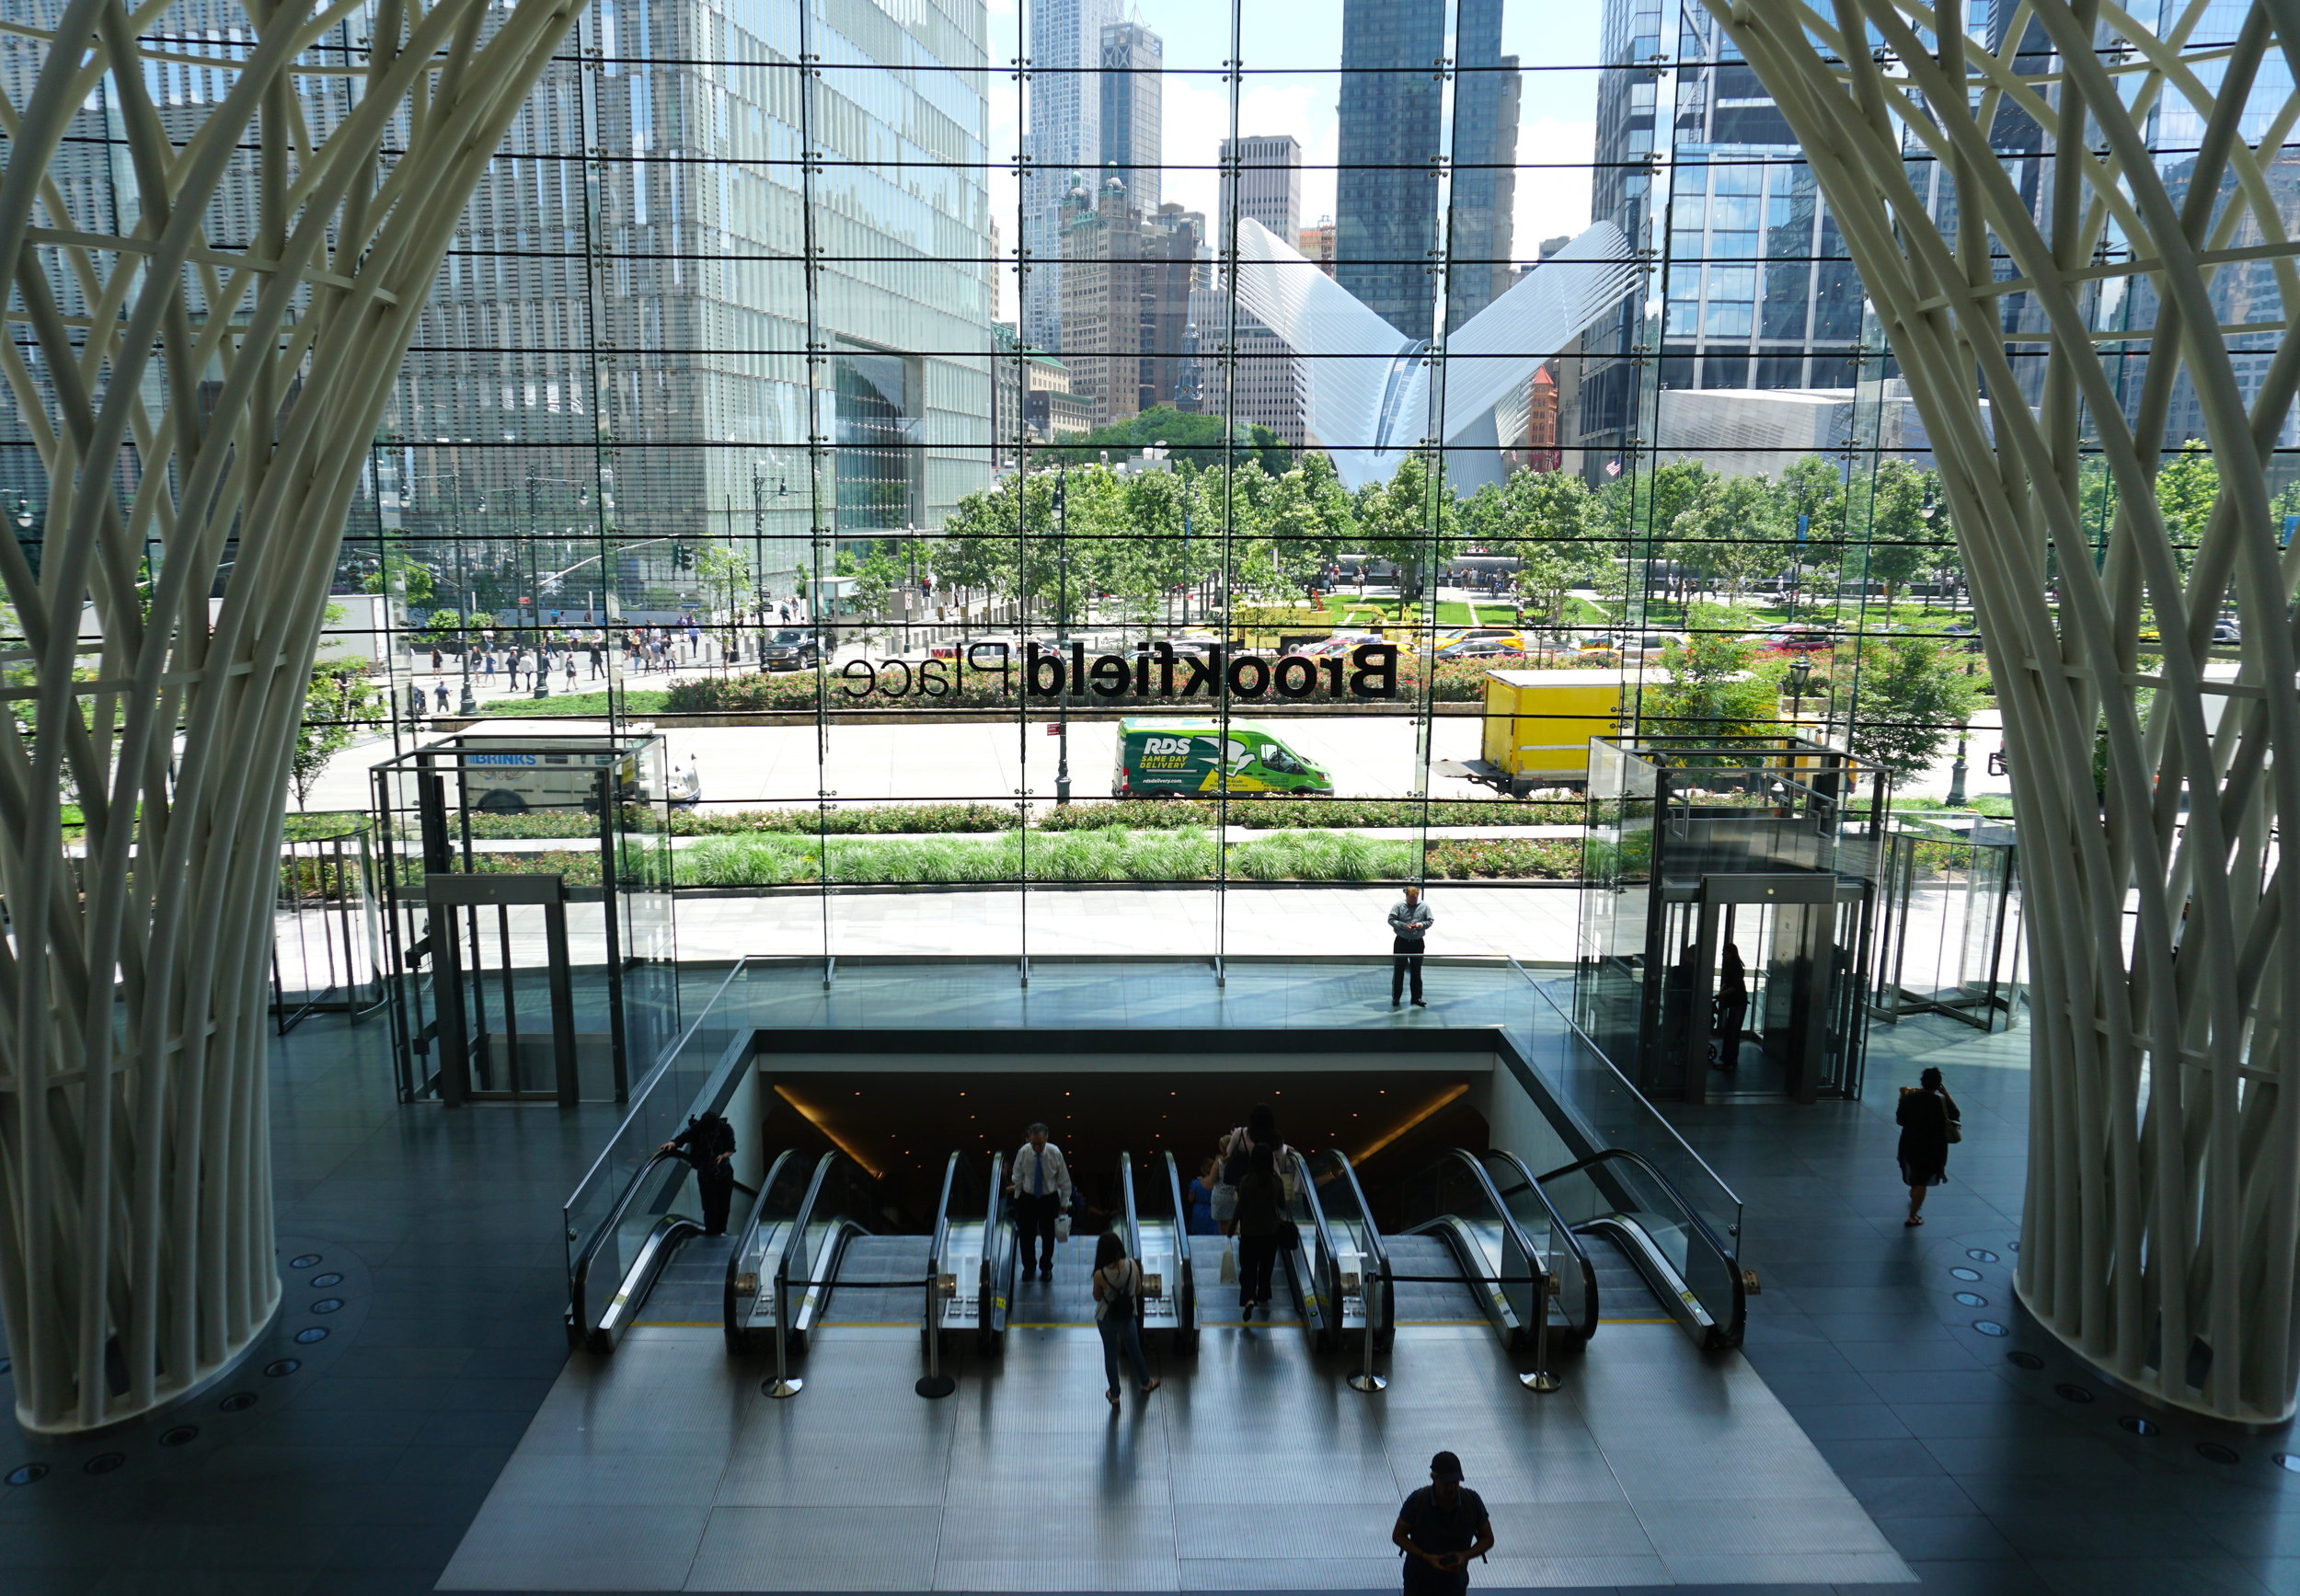 """Just across the street from One World Observatory, find Brookfield Place, a shopping, dining, cultural complex including lux fashion houses, """"it"""" brands such as Vince and Lululemon, as well as mouth-watering food halls:Le District and Hudson Eats."""